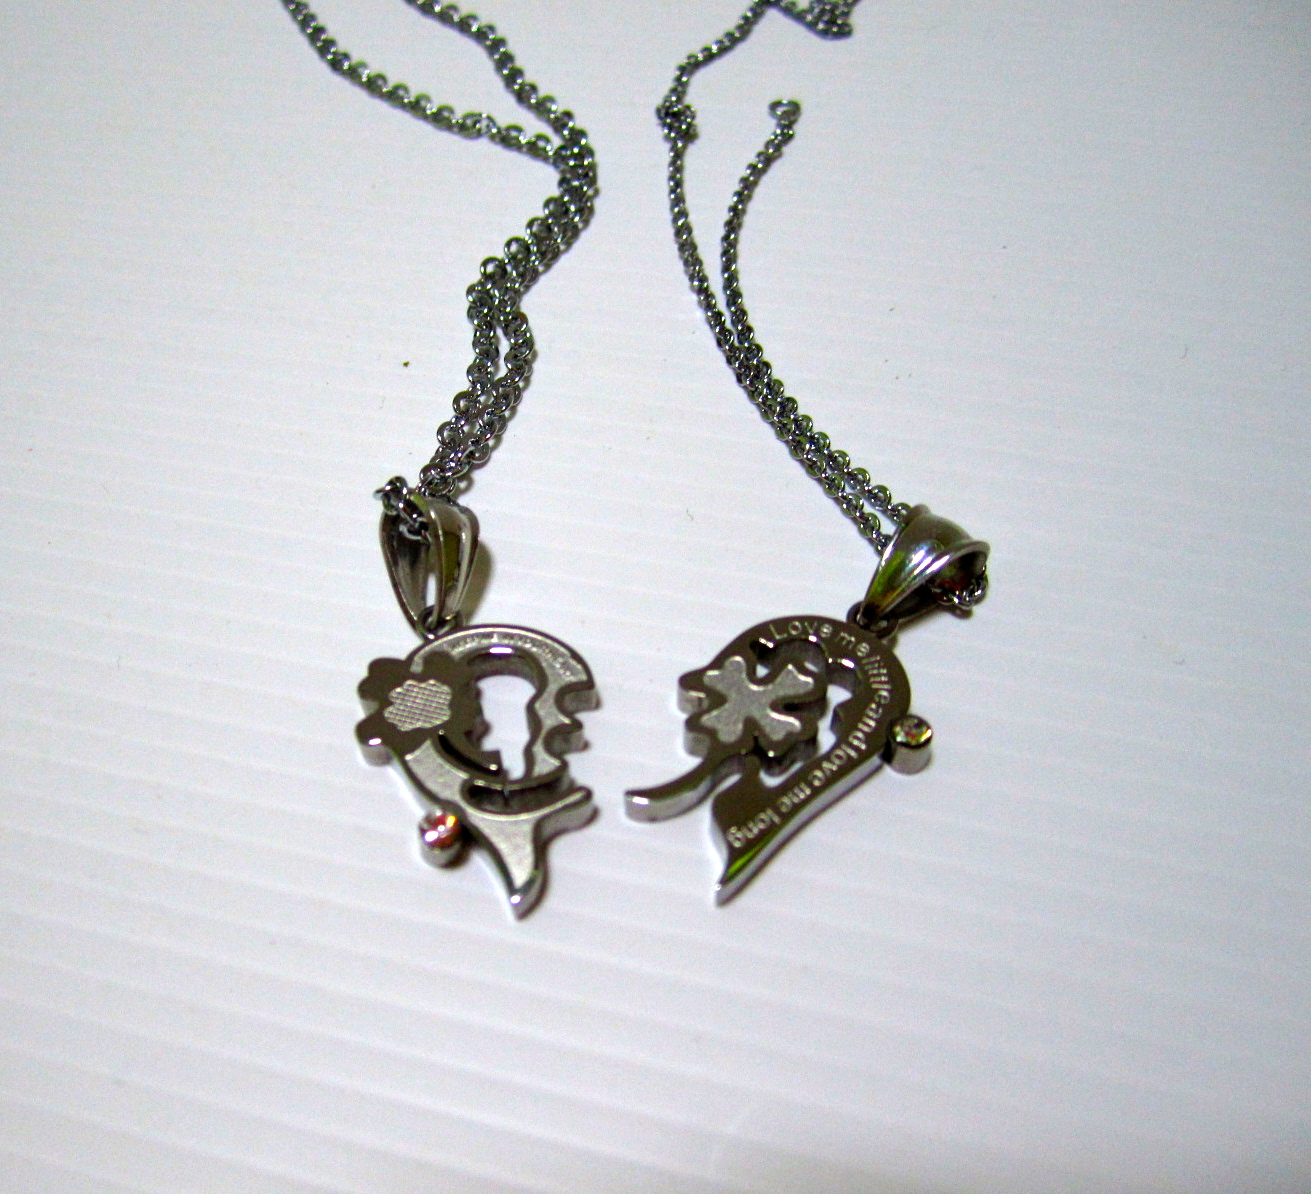 trinketslicious: Couple Accessories - Necklaces